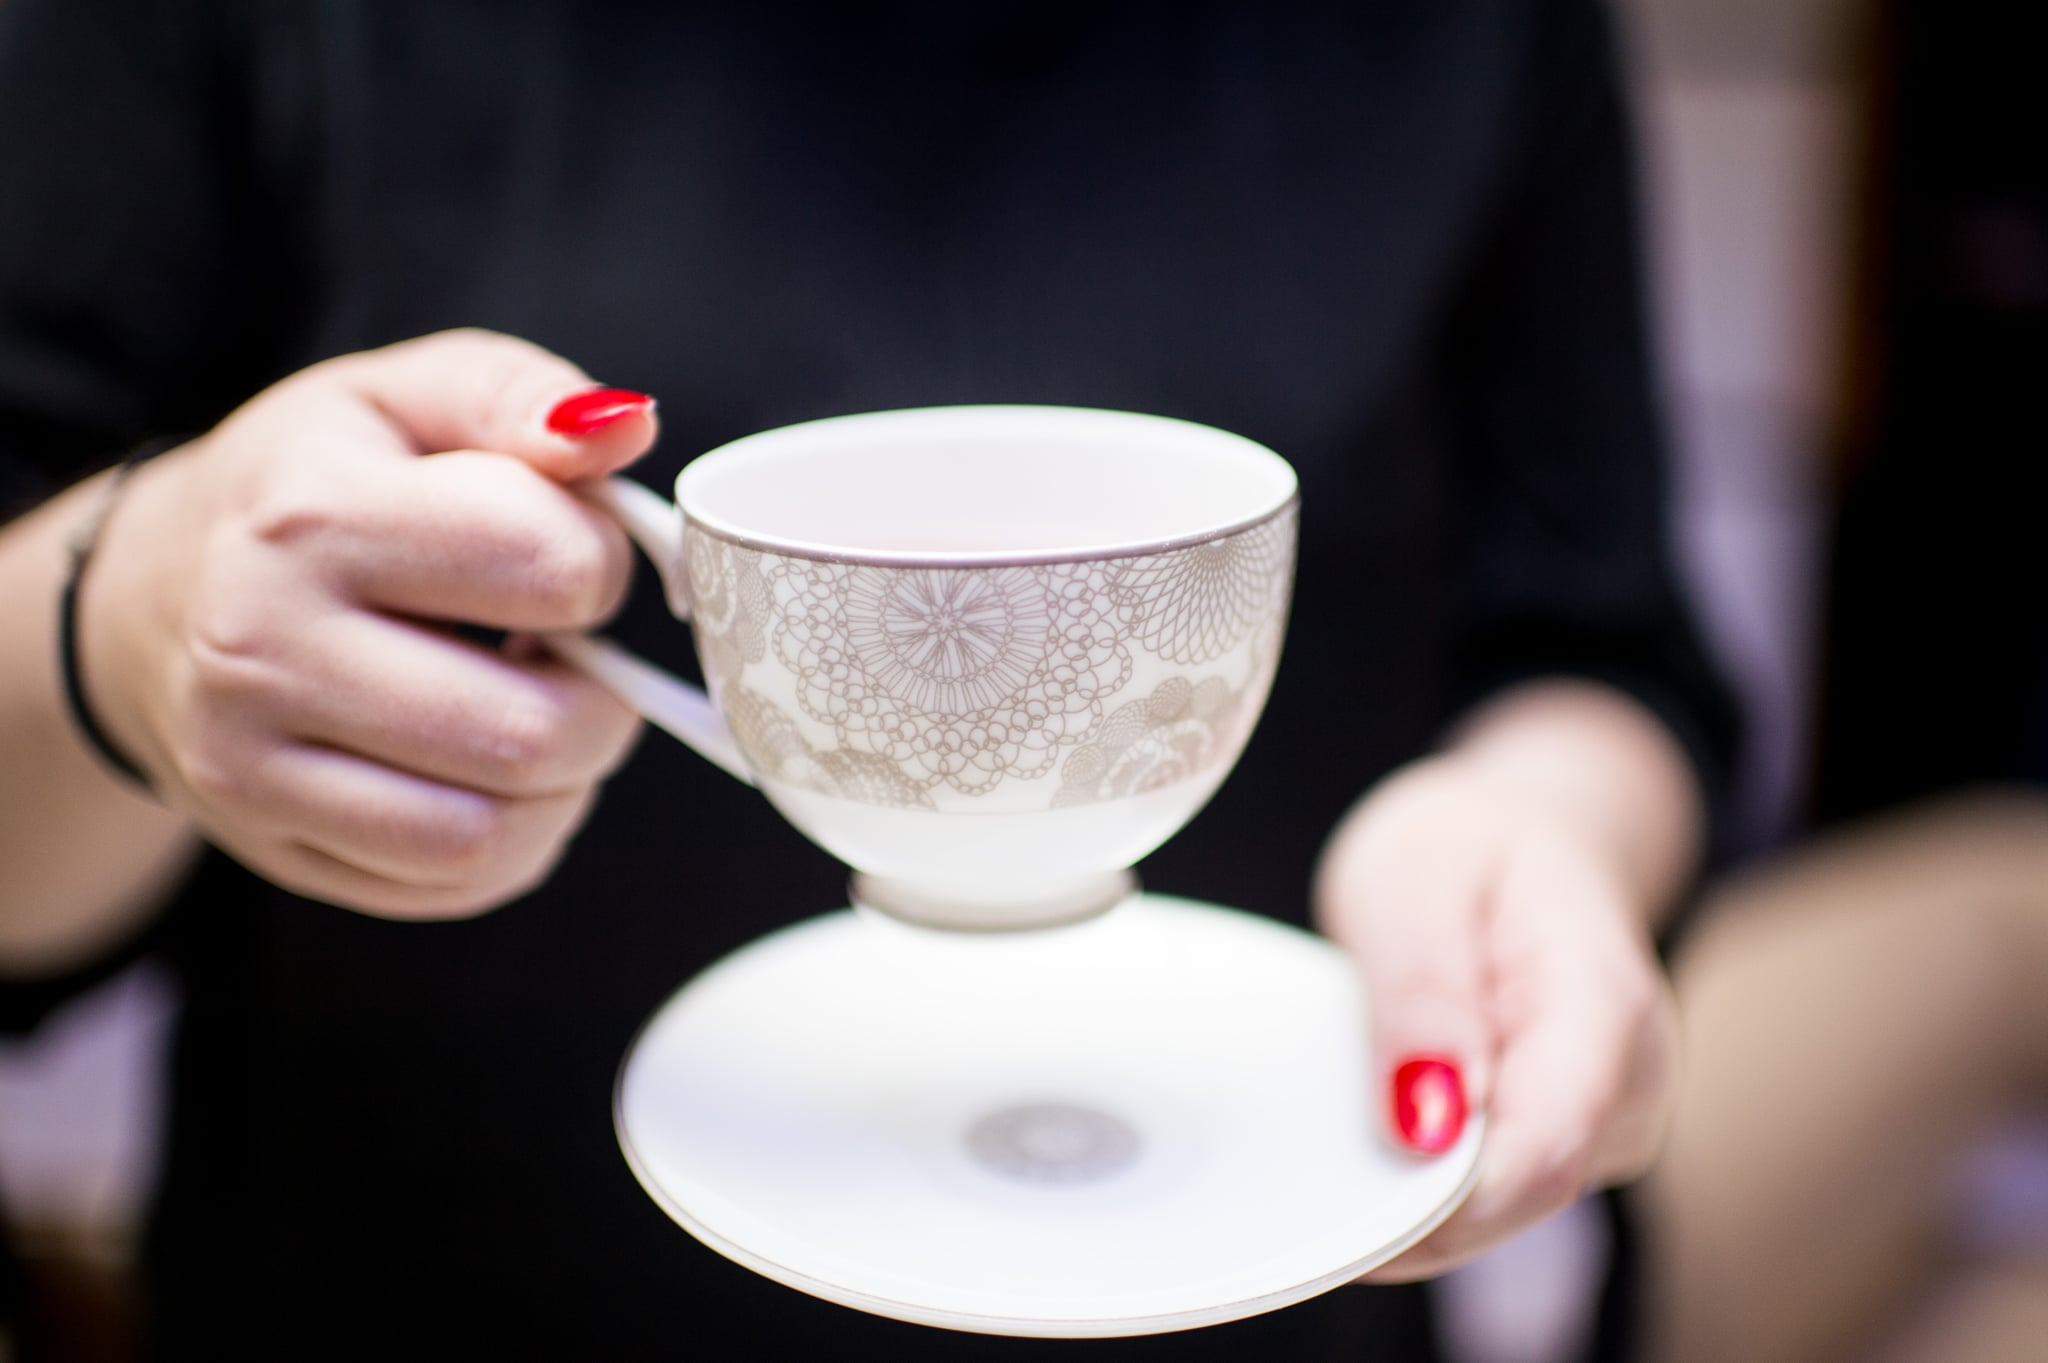 Take a sip of tea to boost your positivity